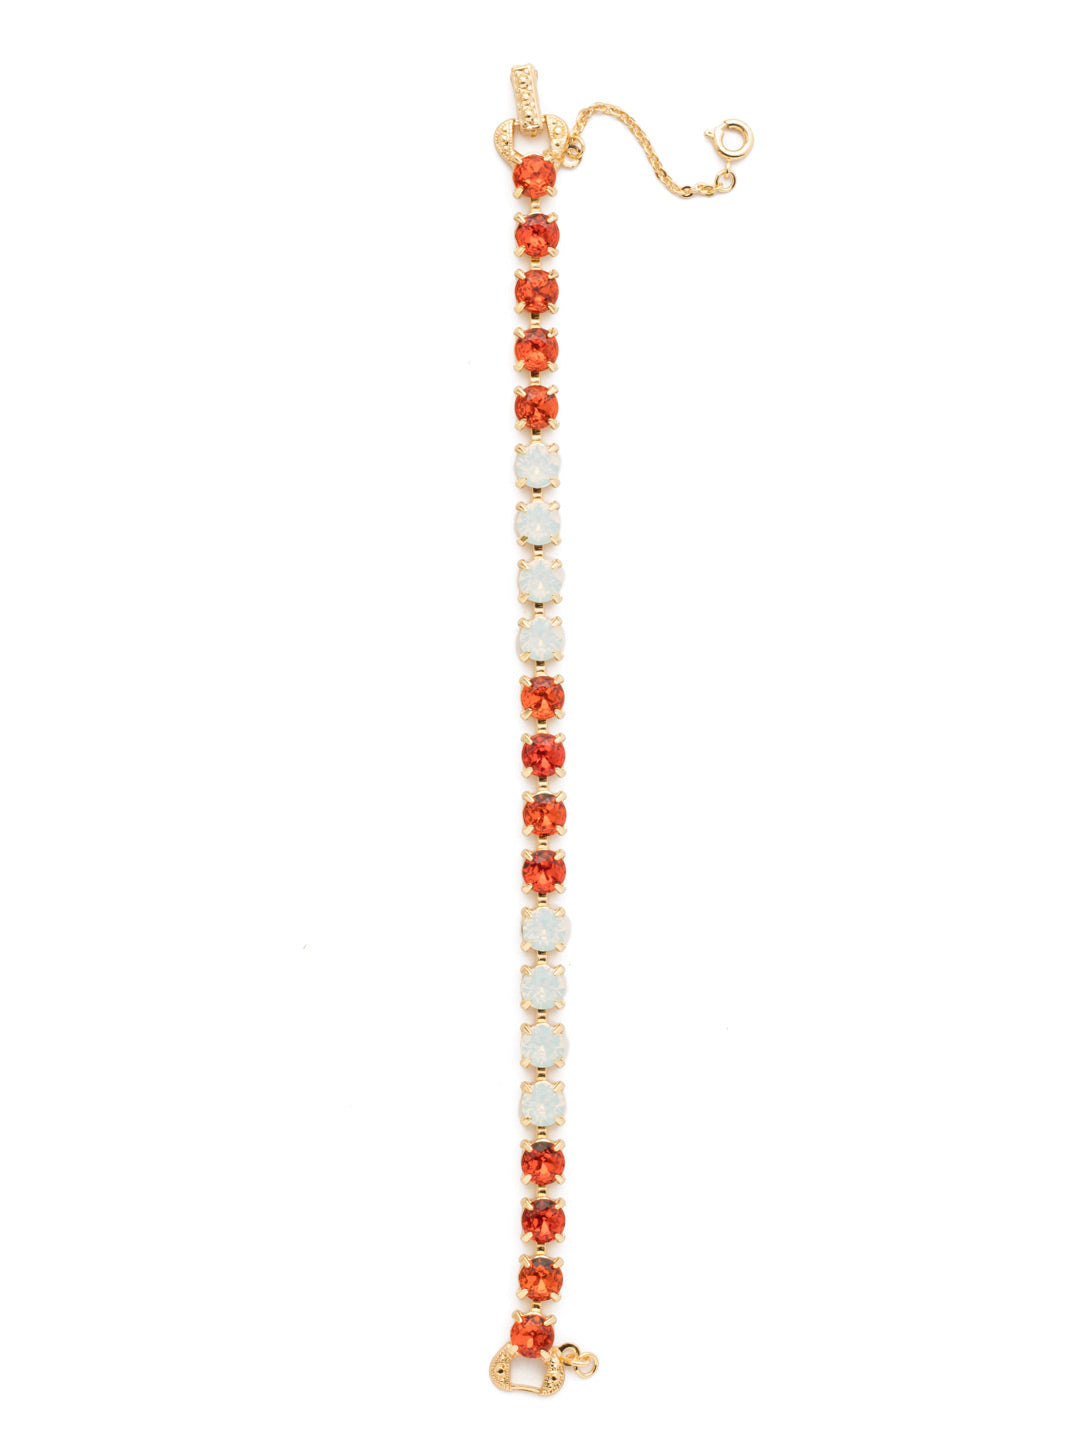 Repeating Round Tennis Bracelet - BCZ36BGOCH